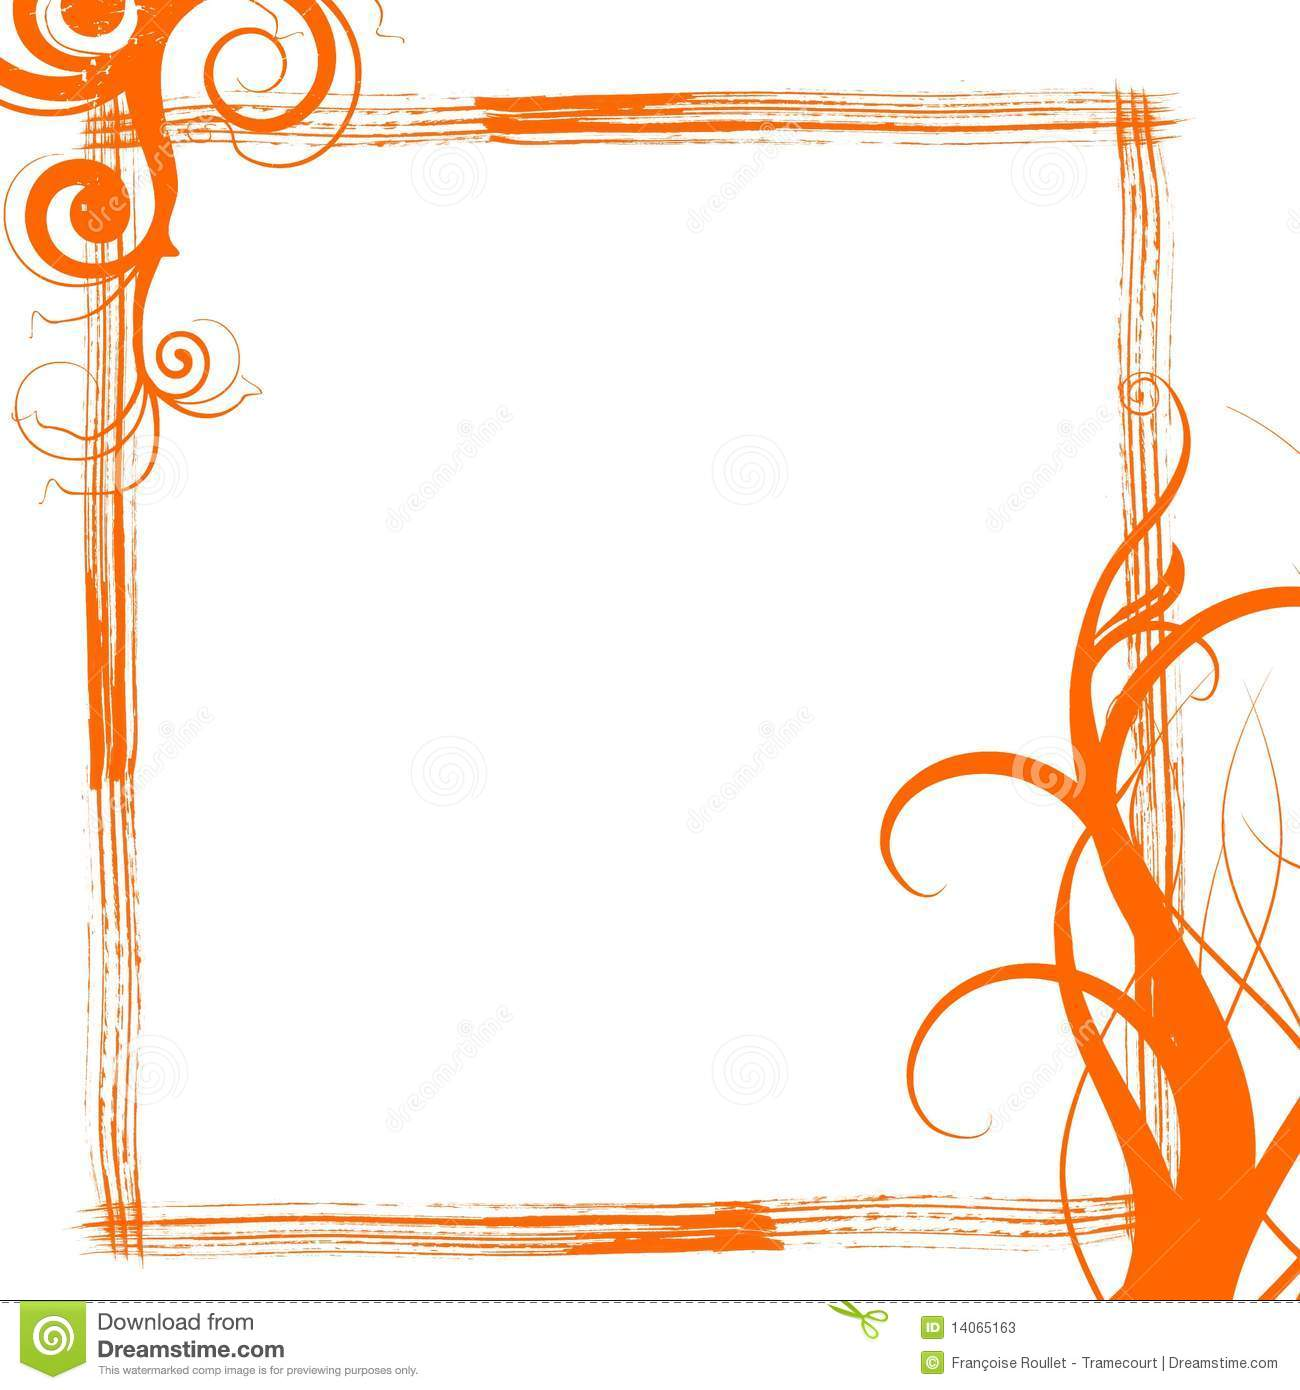 orange grunge swirls frame stock illustration illustration of